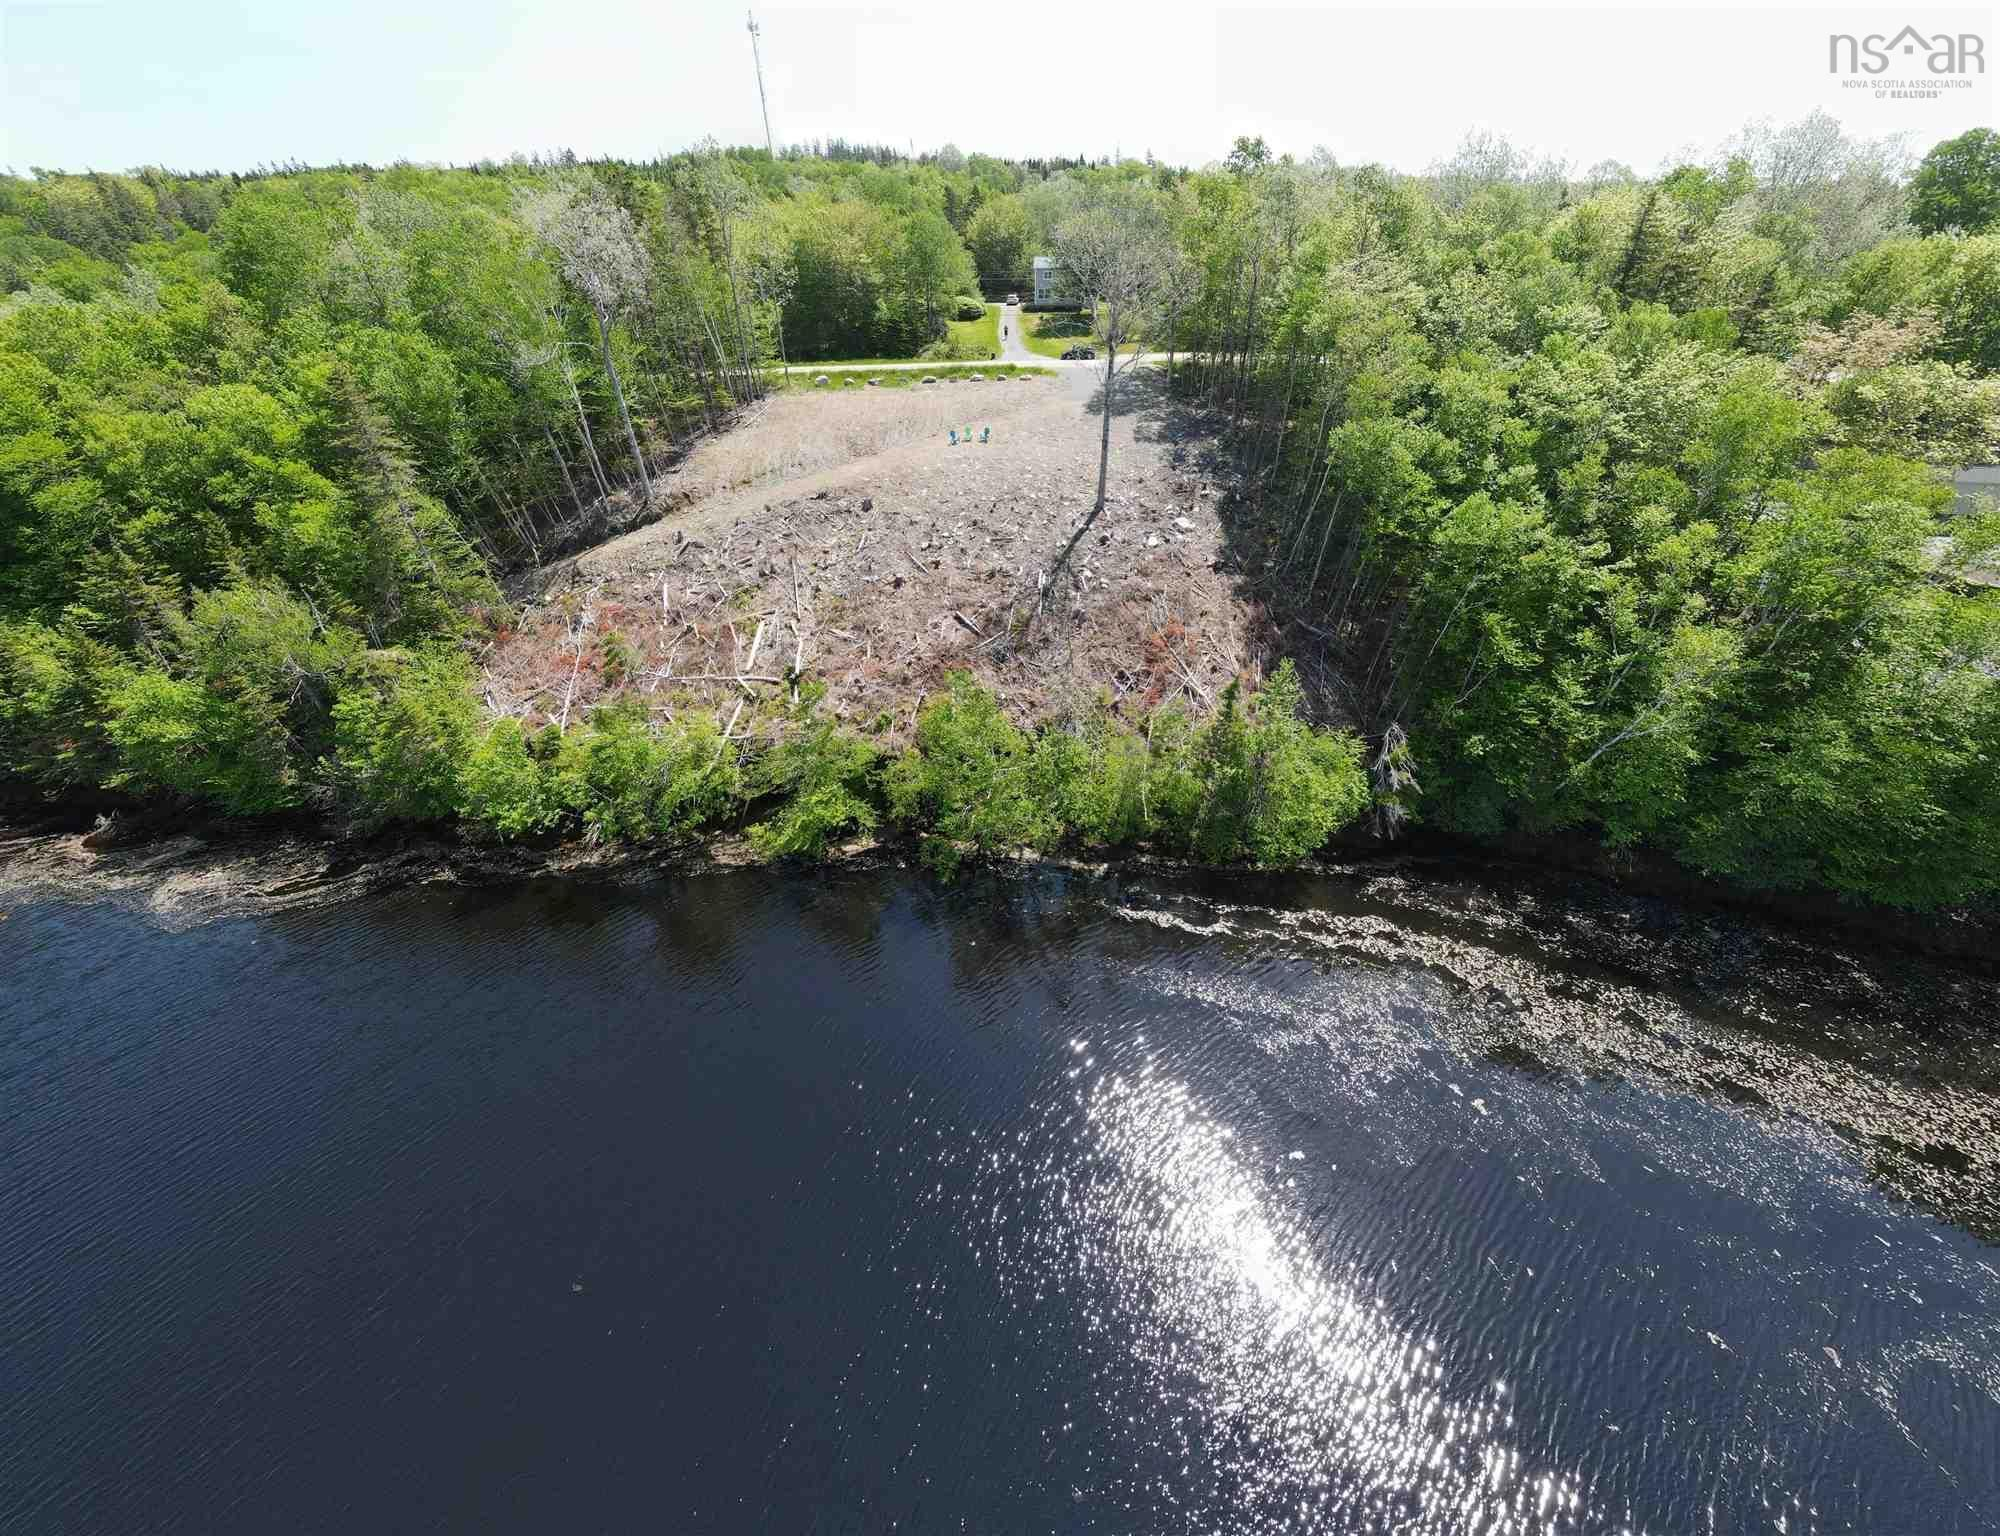 Photo 28: Photos: 284 East River Road in Sheet Harbour: 35-Halifax County East Residential for sale (Halifax-Dartmouth)  : MLS®# 202120104